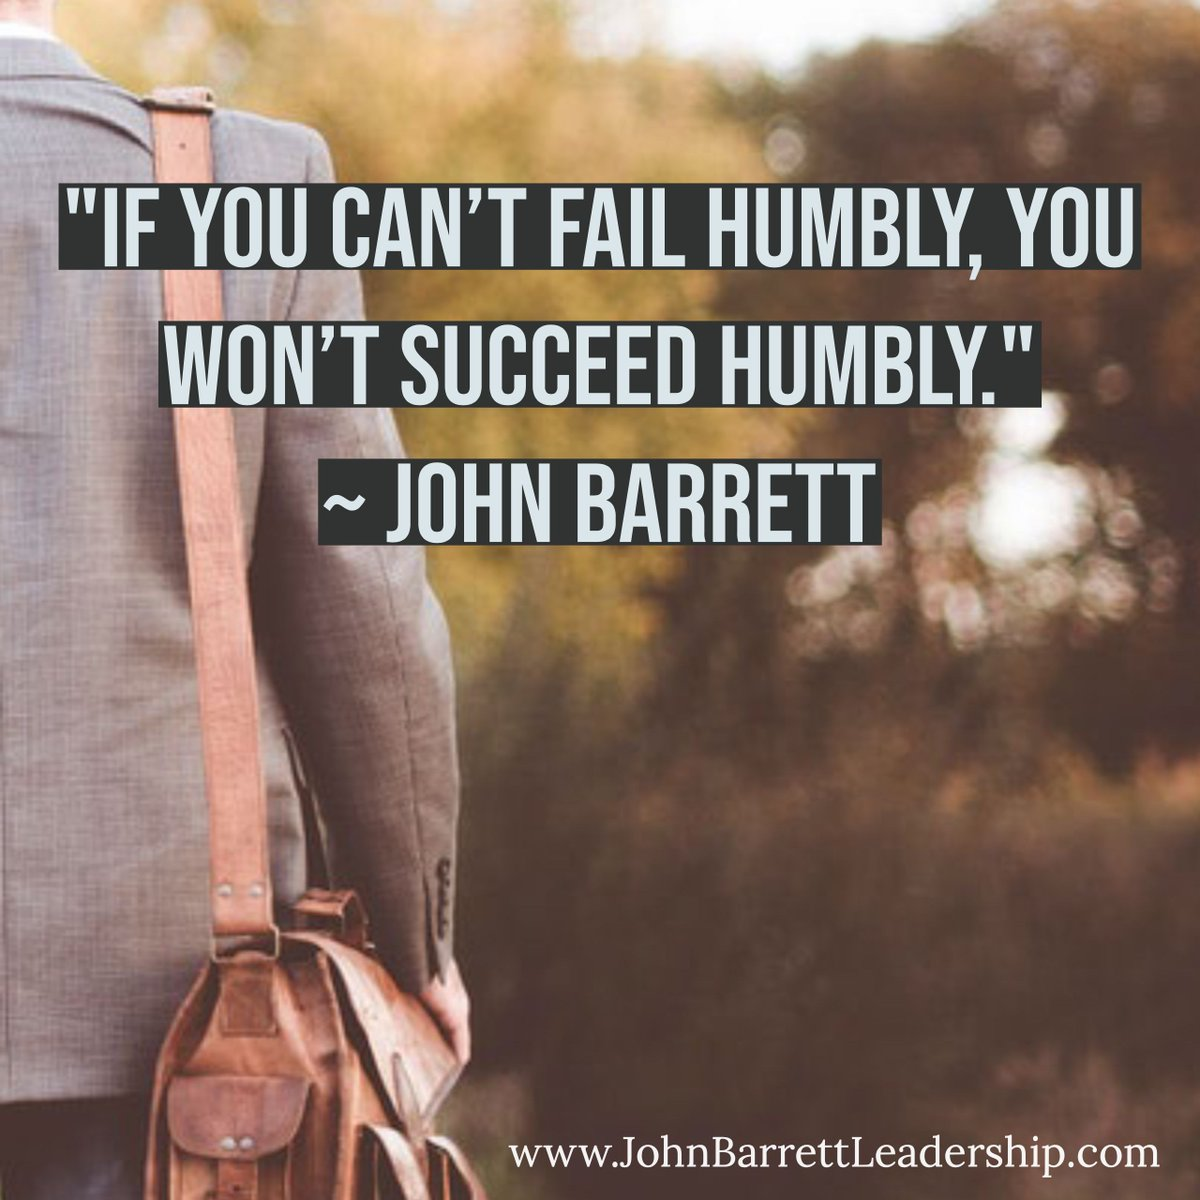 Fail humbly...#success #successtips #successful #successmindset #mindset #growthmindset #growth #inspiration #inspirational #inspirationalquotes #motivation #motivationalquotes #positivemindset #lifecoach #leadershipcoachpic.twitter.com/s7oj0pRSK3